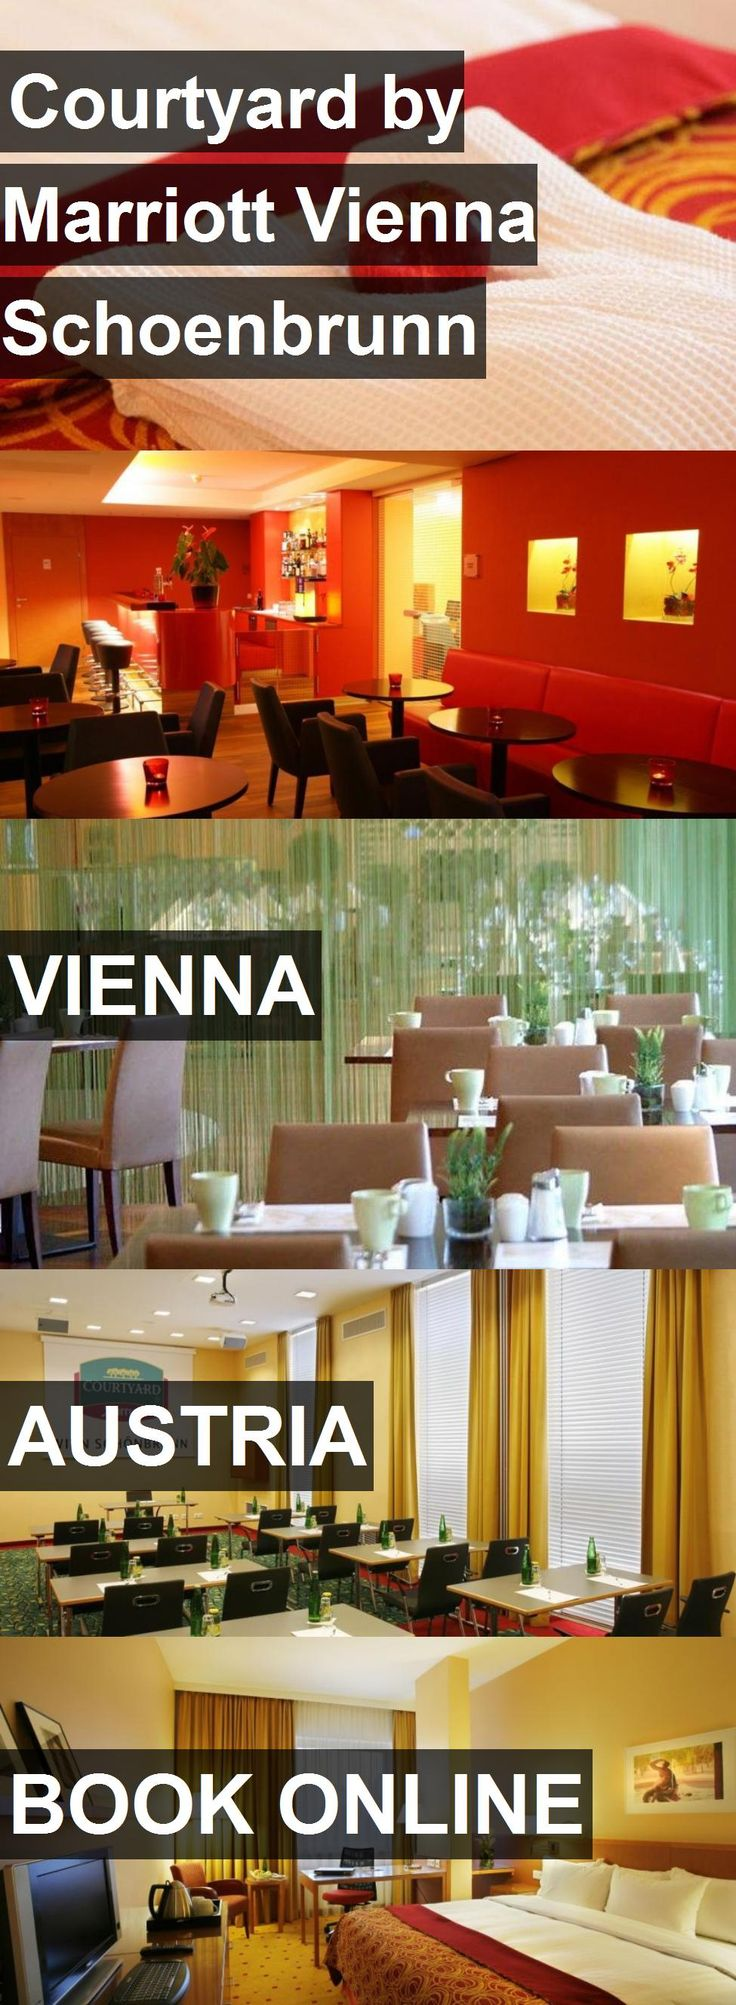 Hotel Courtyard by Marriott Vienna Schoenbrunn in Vienna, Austria. For more information, photos, reviews and best prices please follow the link. #Austria #Vienna #travel #vacation #hotel